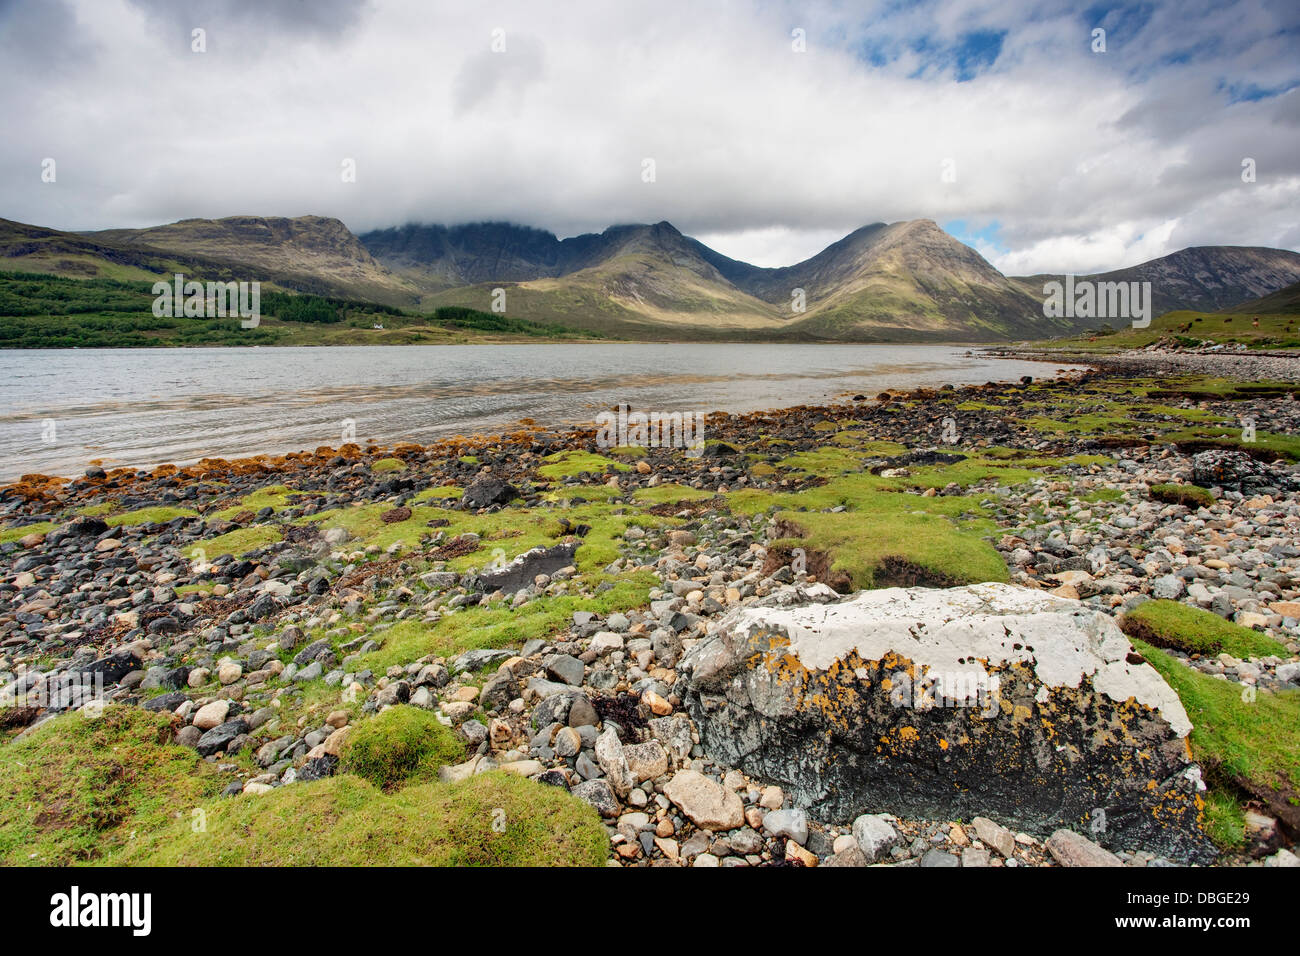 Bla Bheinn and Loch Slapin Isle of Skye, Inner Hebrides Scotland, UK LA006297 - Stock Image